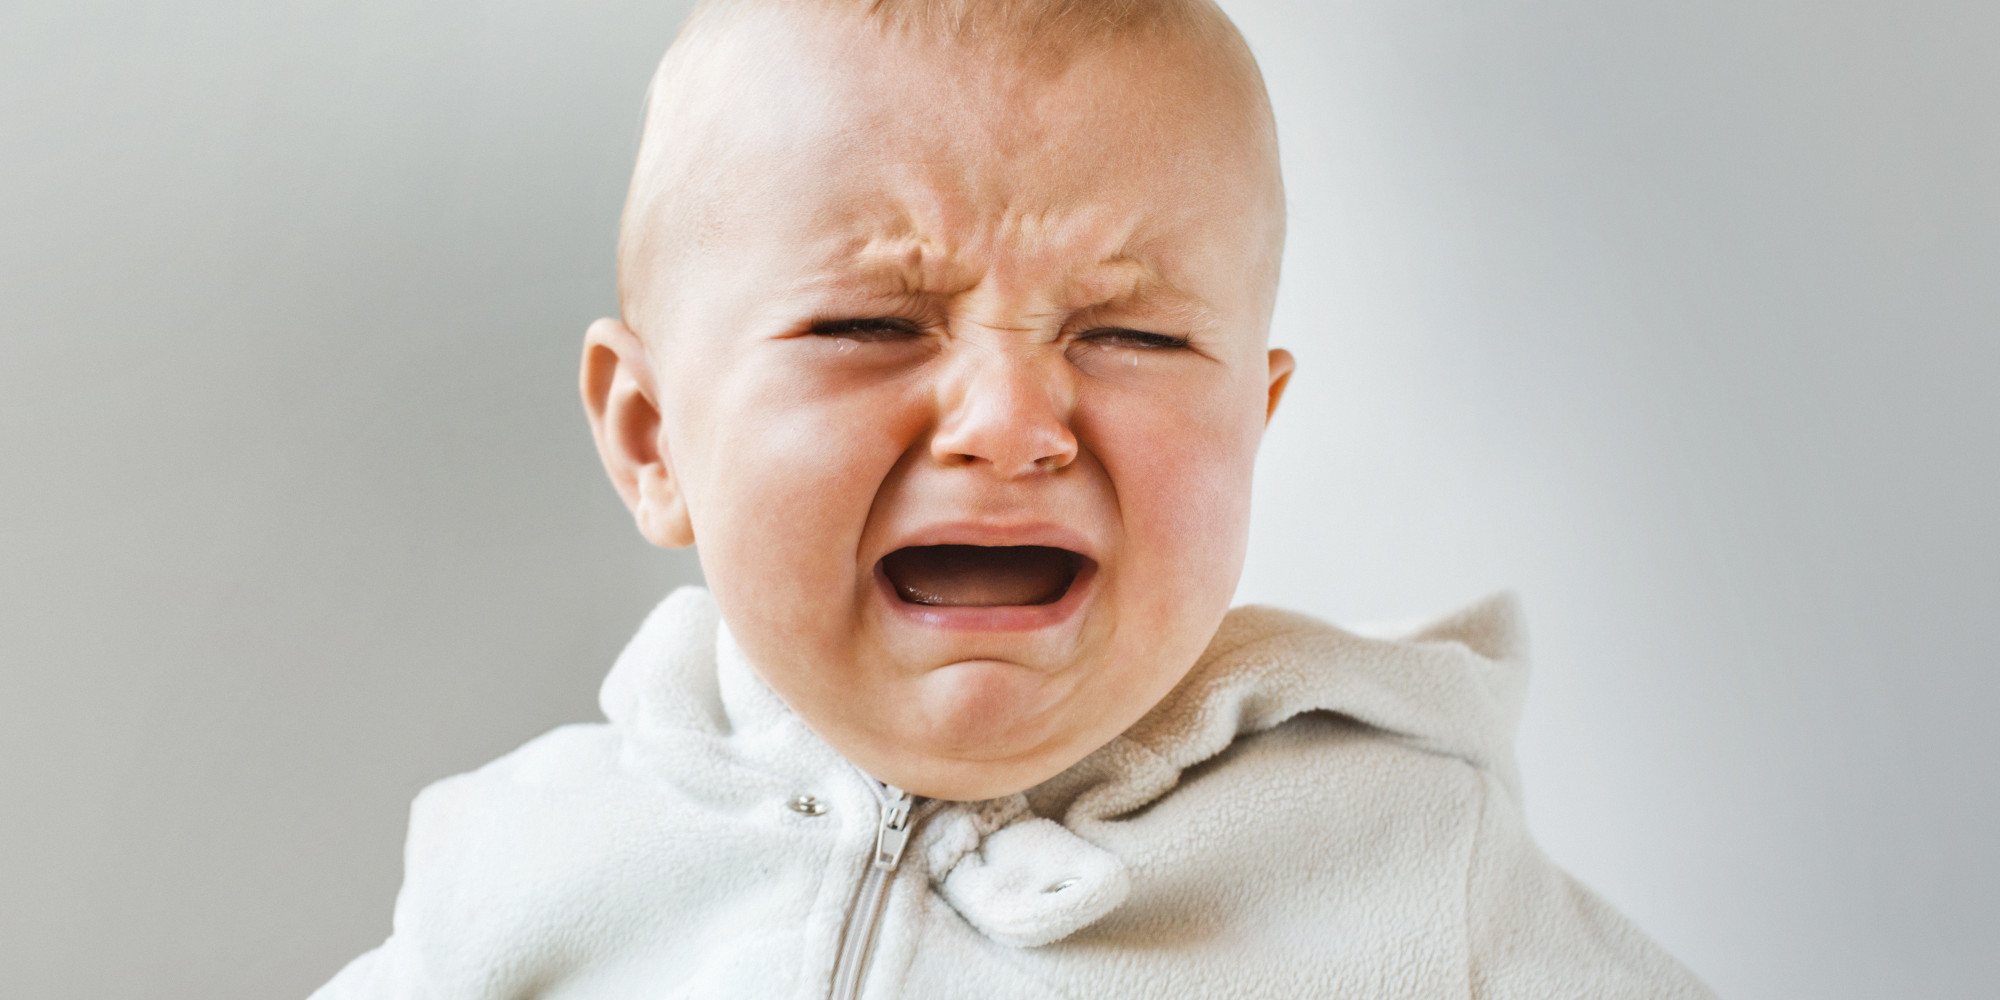 Funny crying baby o baby crying facebook